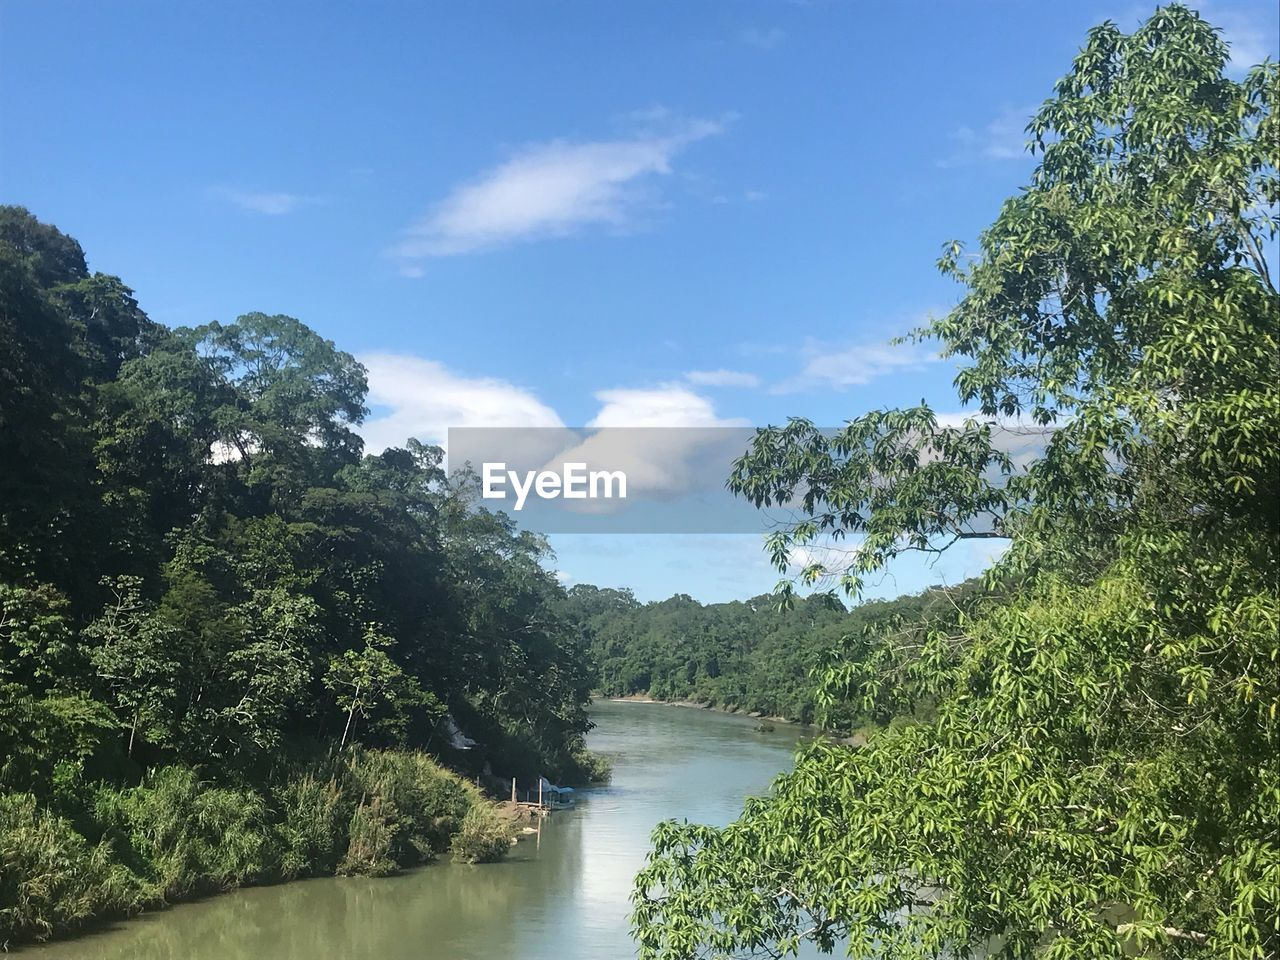 tree, water, plant, sky, beauty in nature, cloud - sky, tranquility, nature, scenics - nature, growth, river, green color, tranquil scene, day, no people, forest, environment, non-urban scene, outdoors